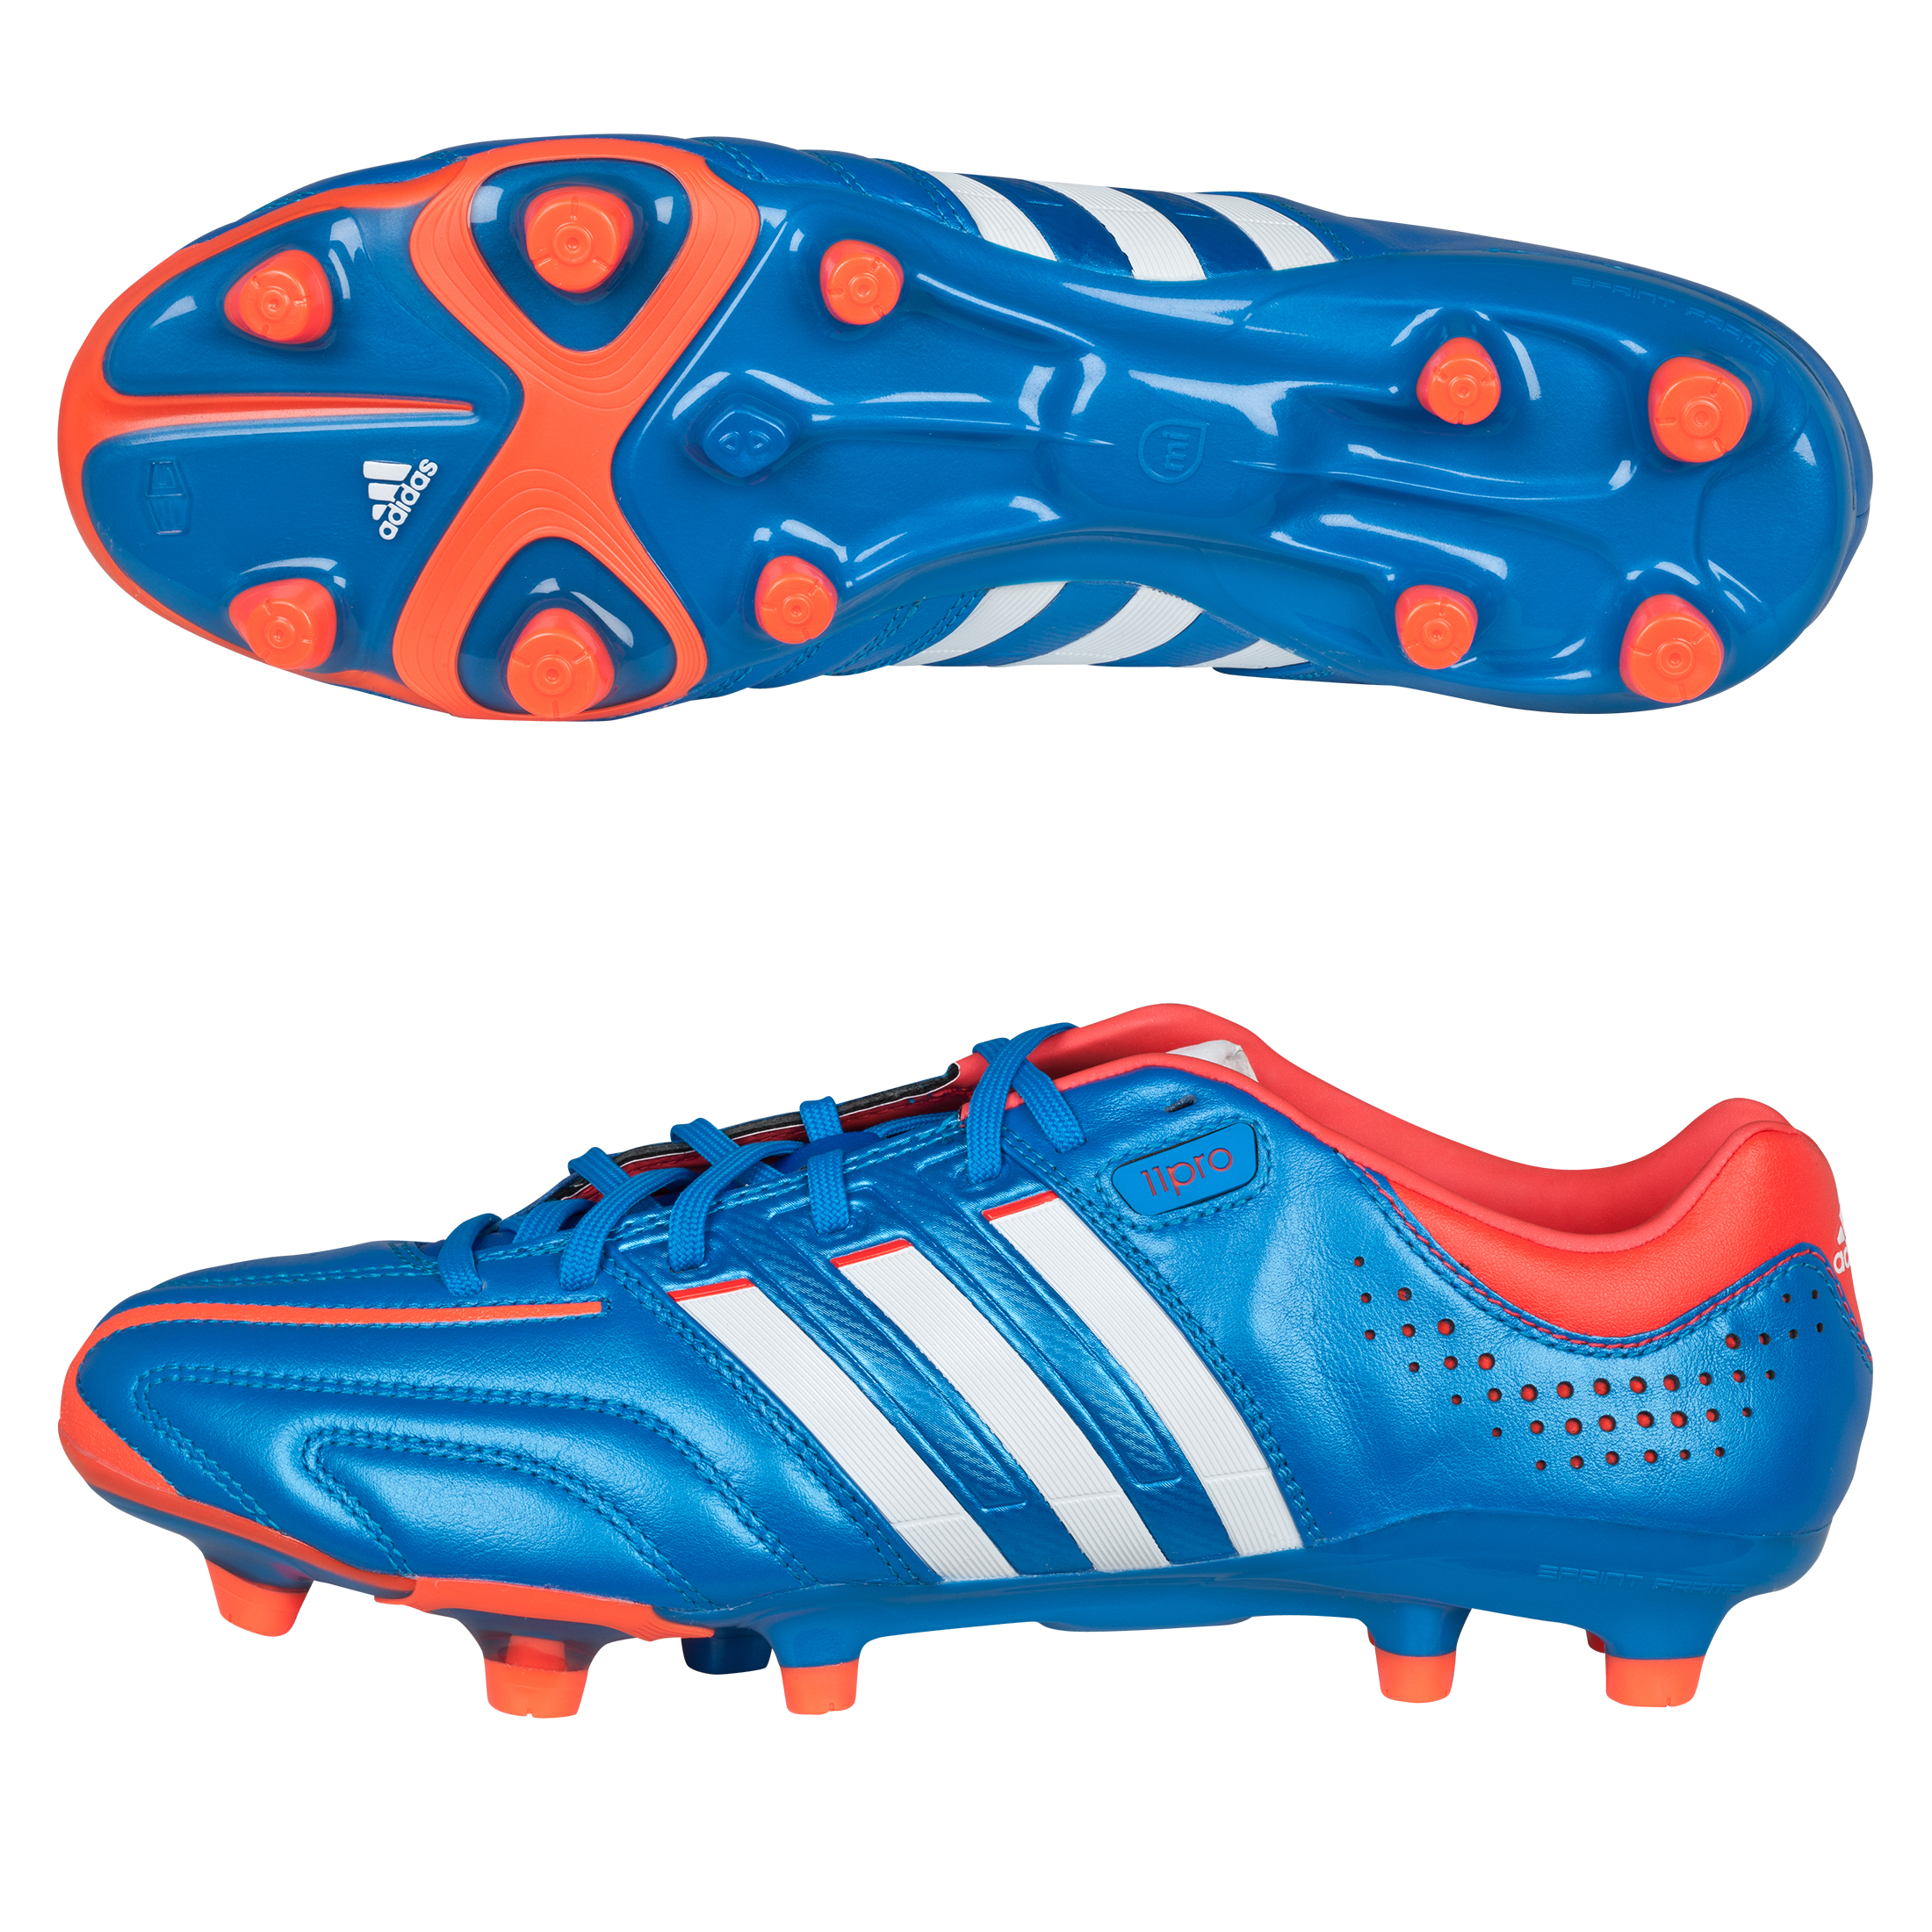 Adidas Adipure 11Pro TRX Firm Ground Football Boots - Bright Blue/Running White/Infrared